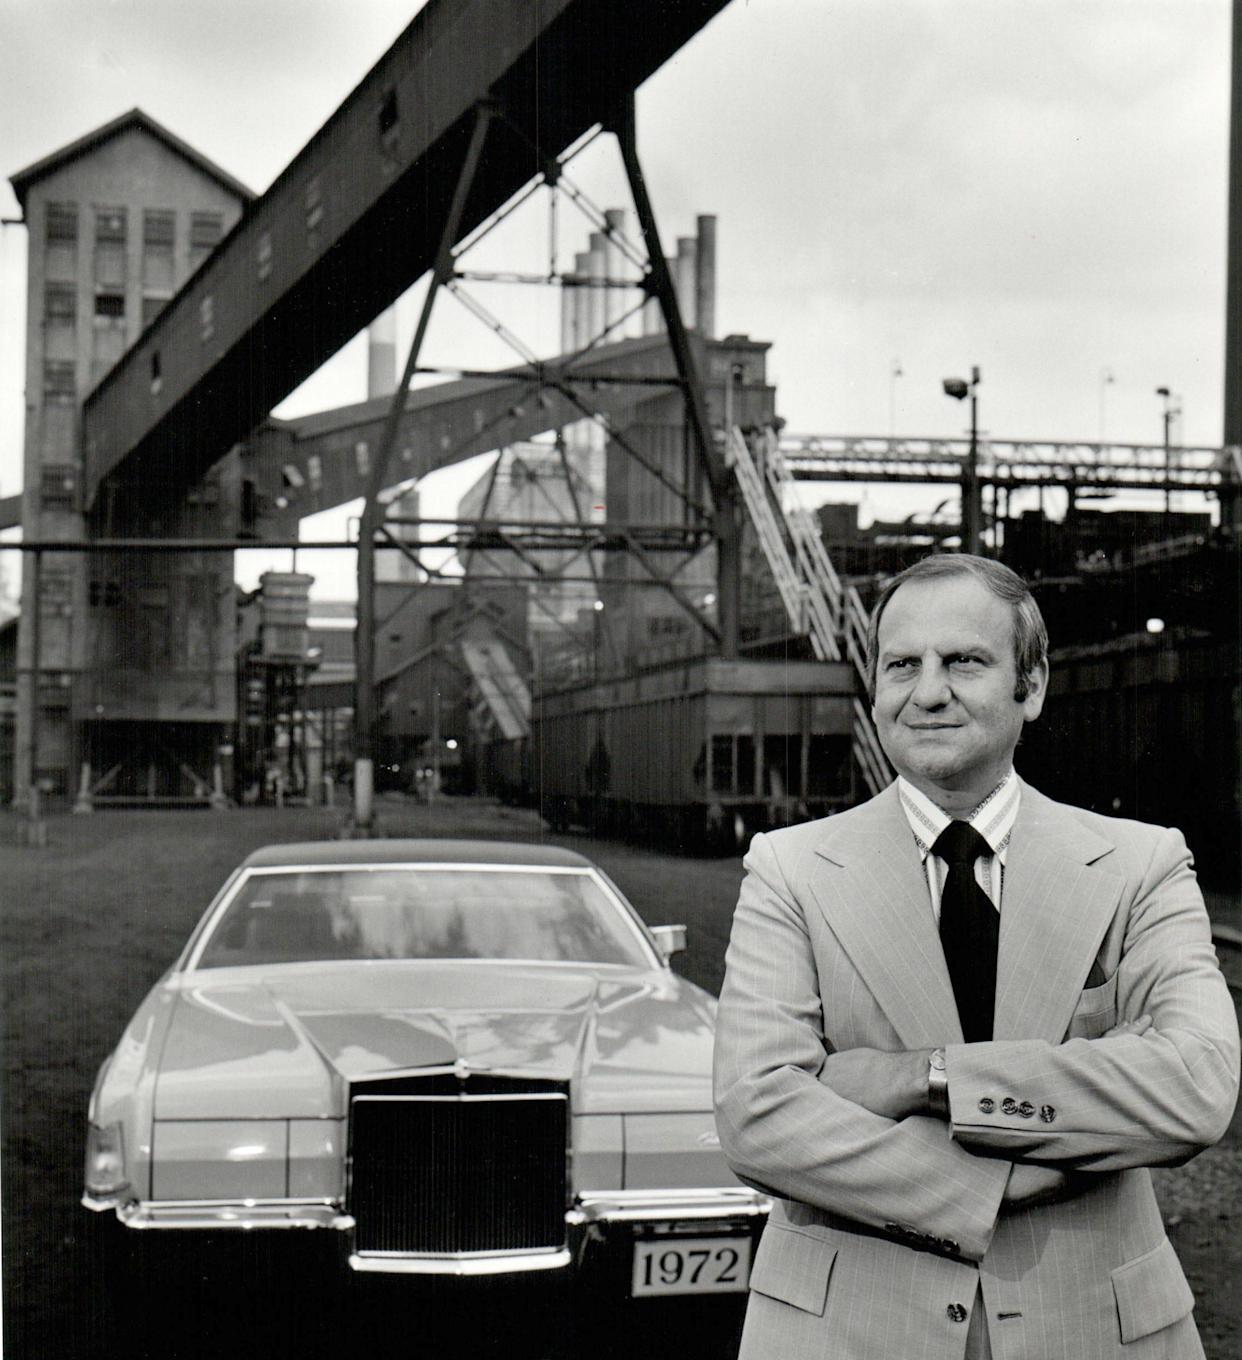 Lee Iacocca, as a young man, is already president of the Ford Motor Company, shown here in front of the River Rouge Plant in 1971.